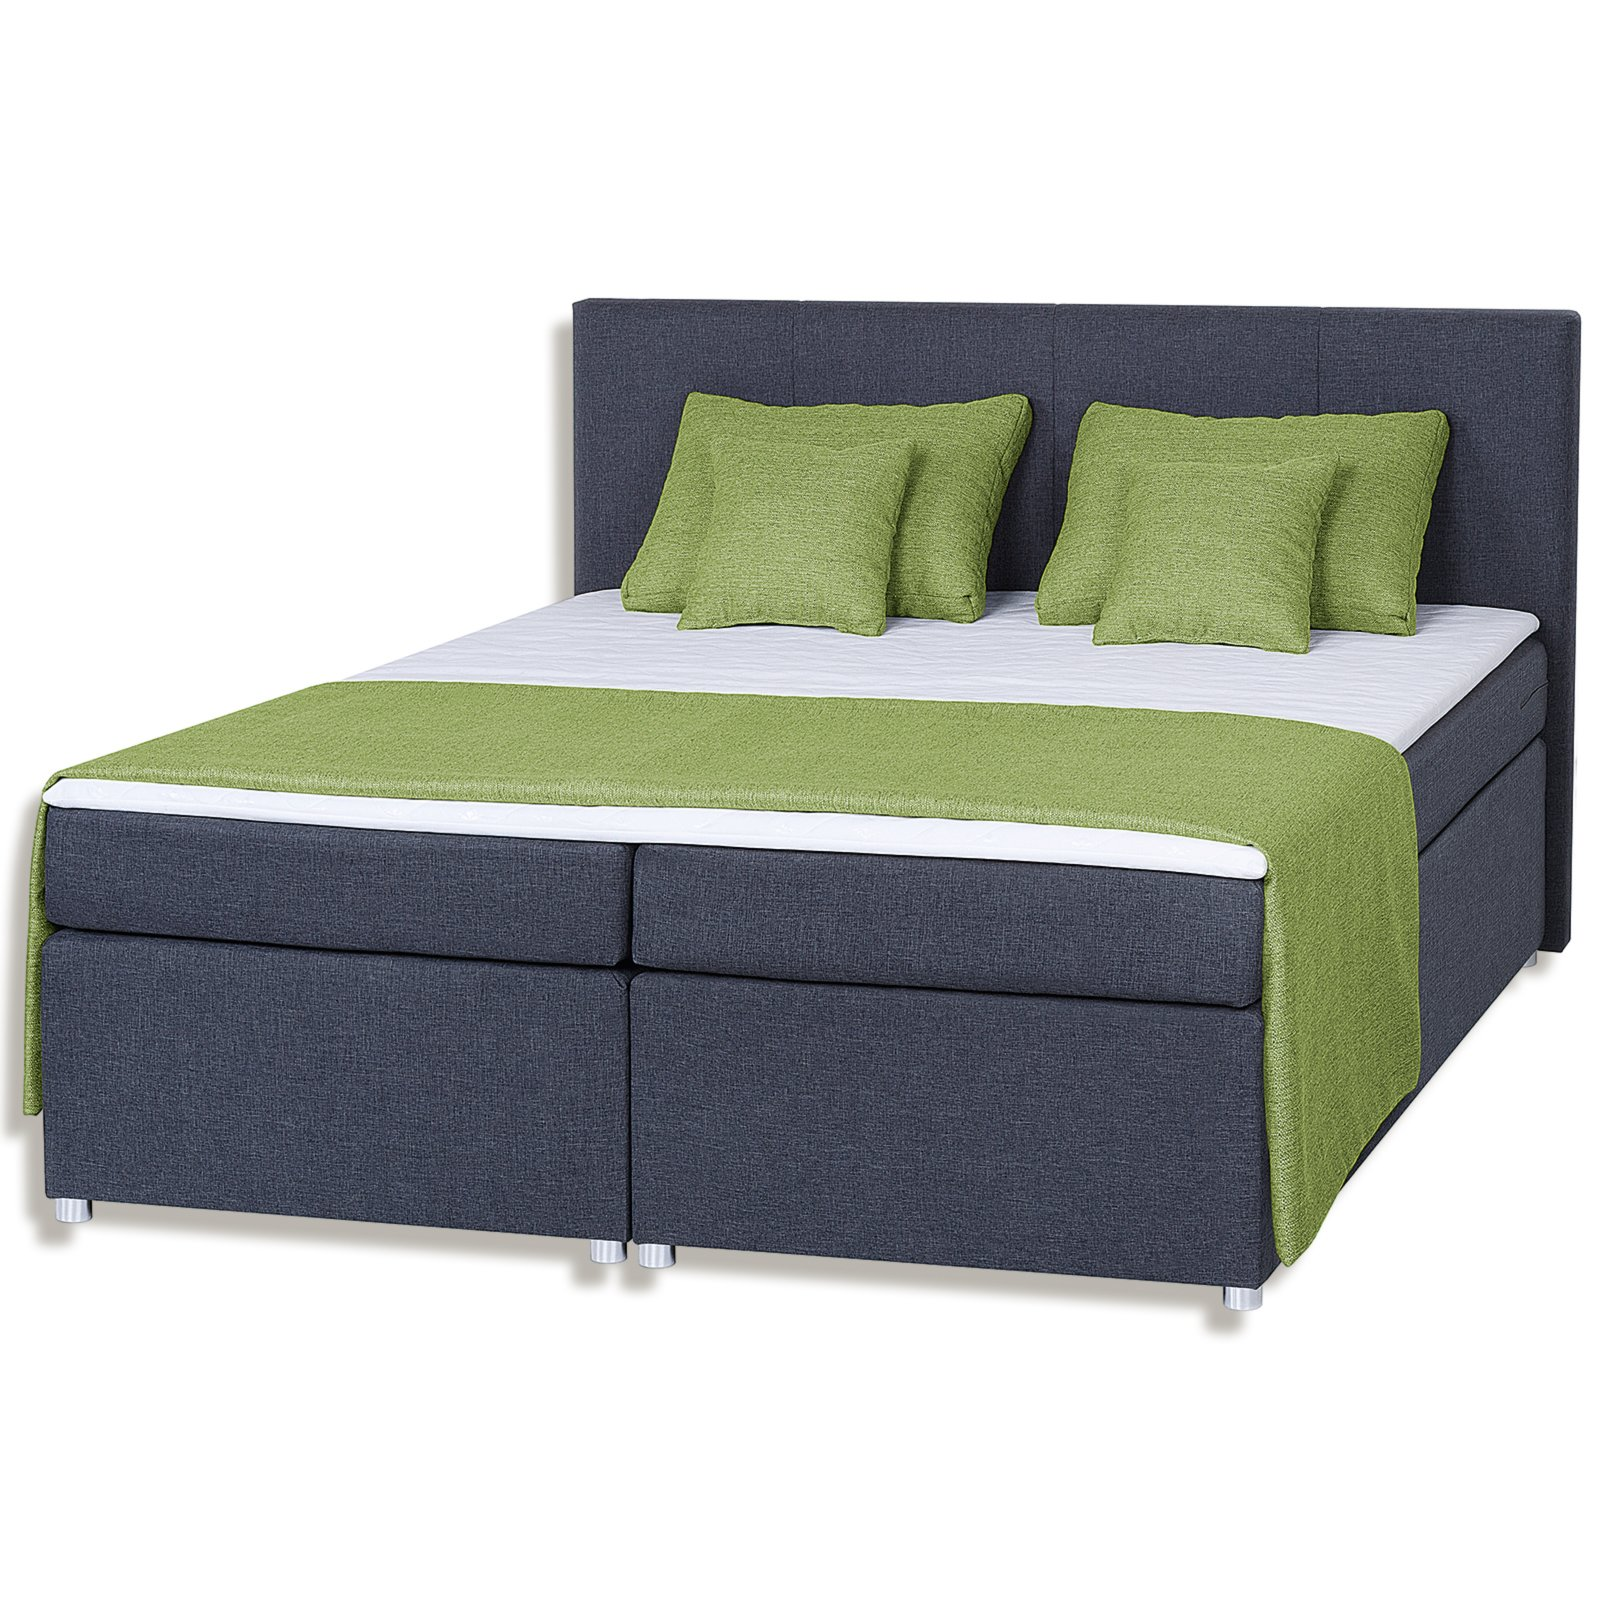 roller boxspringbett haiti h3 dunkelgrau 180x200 cm ebay. Black Bedroom Furniture Sets. Home Design Ideas